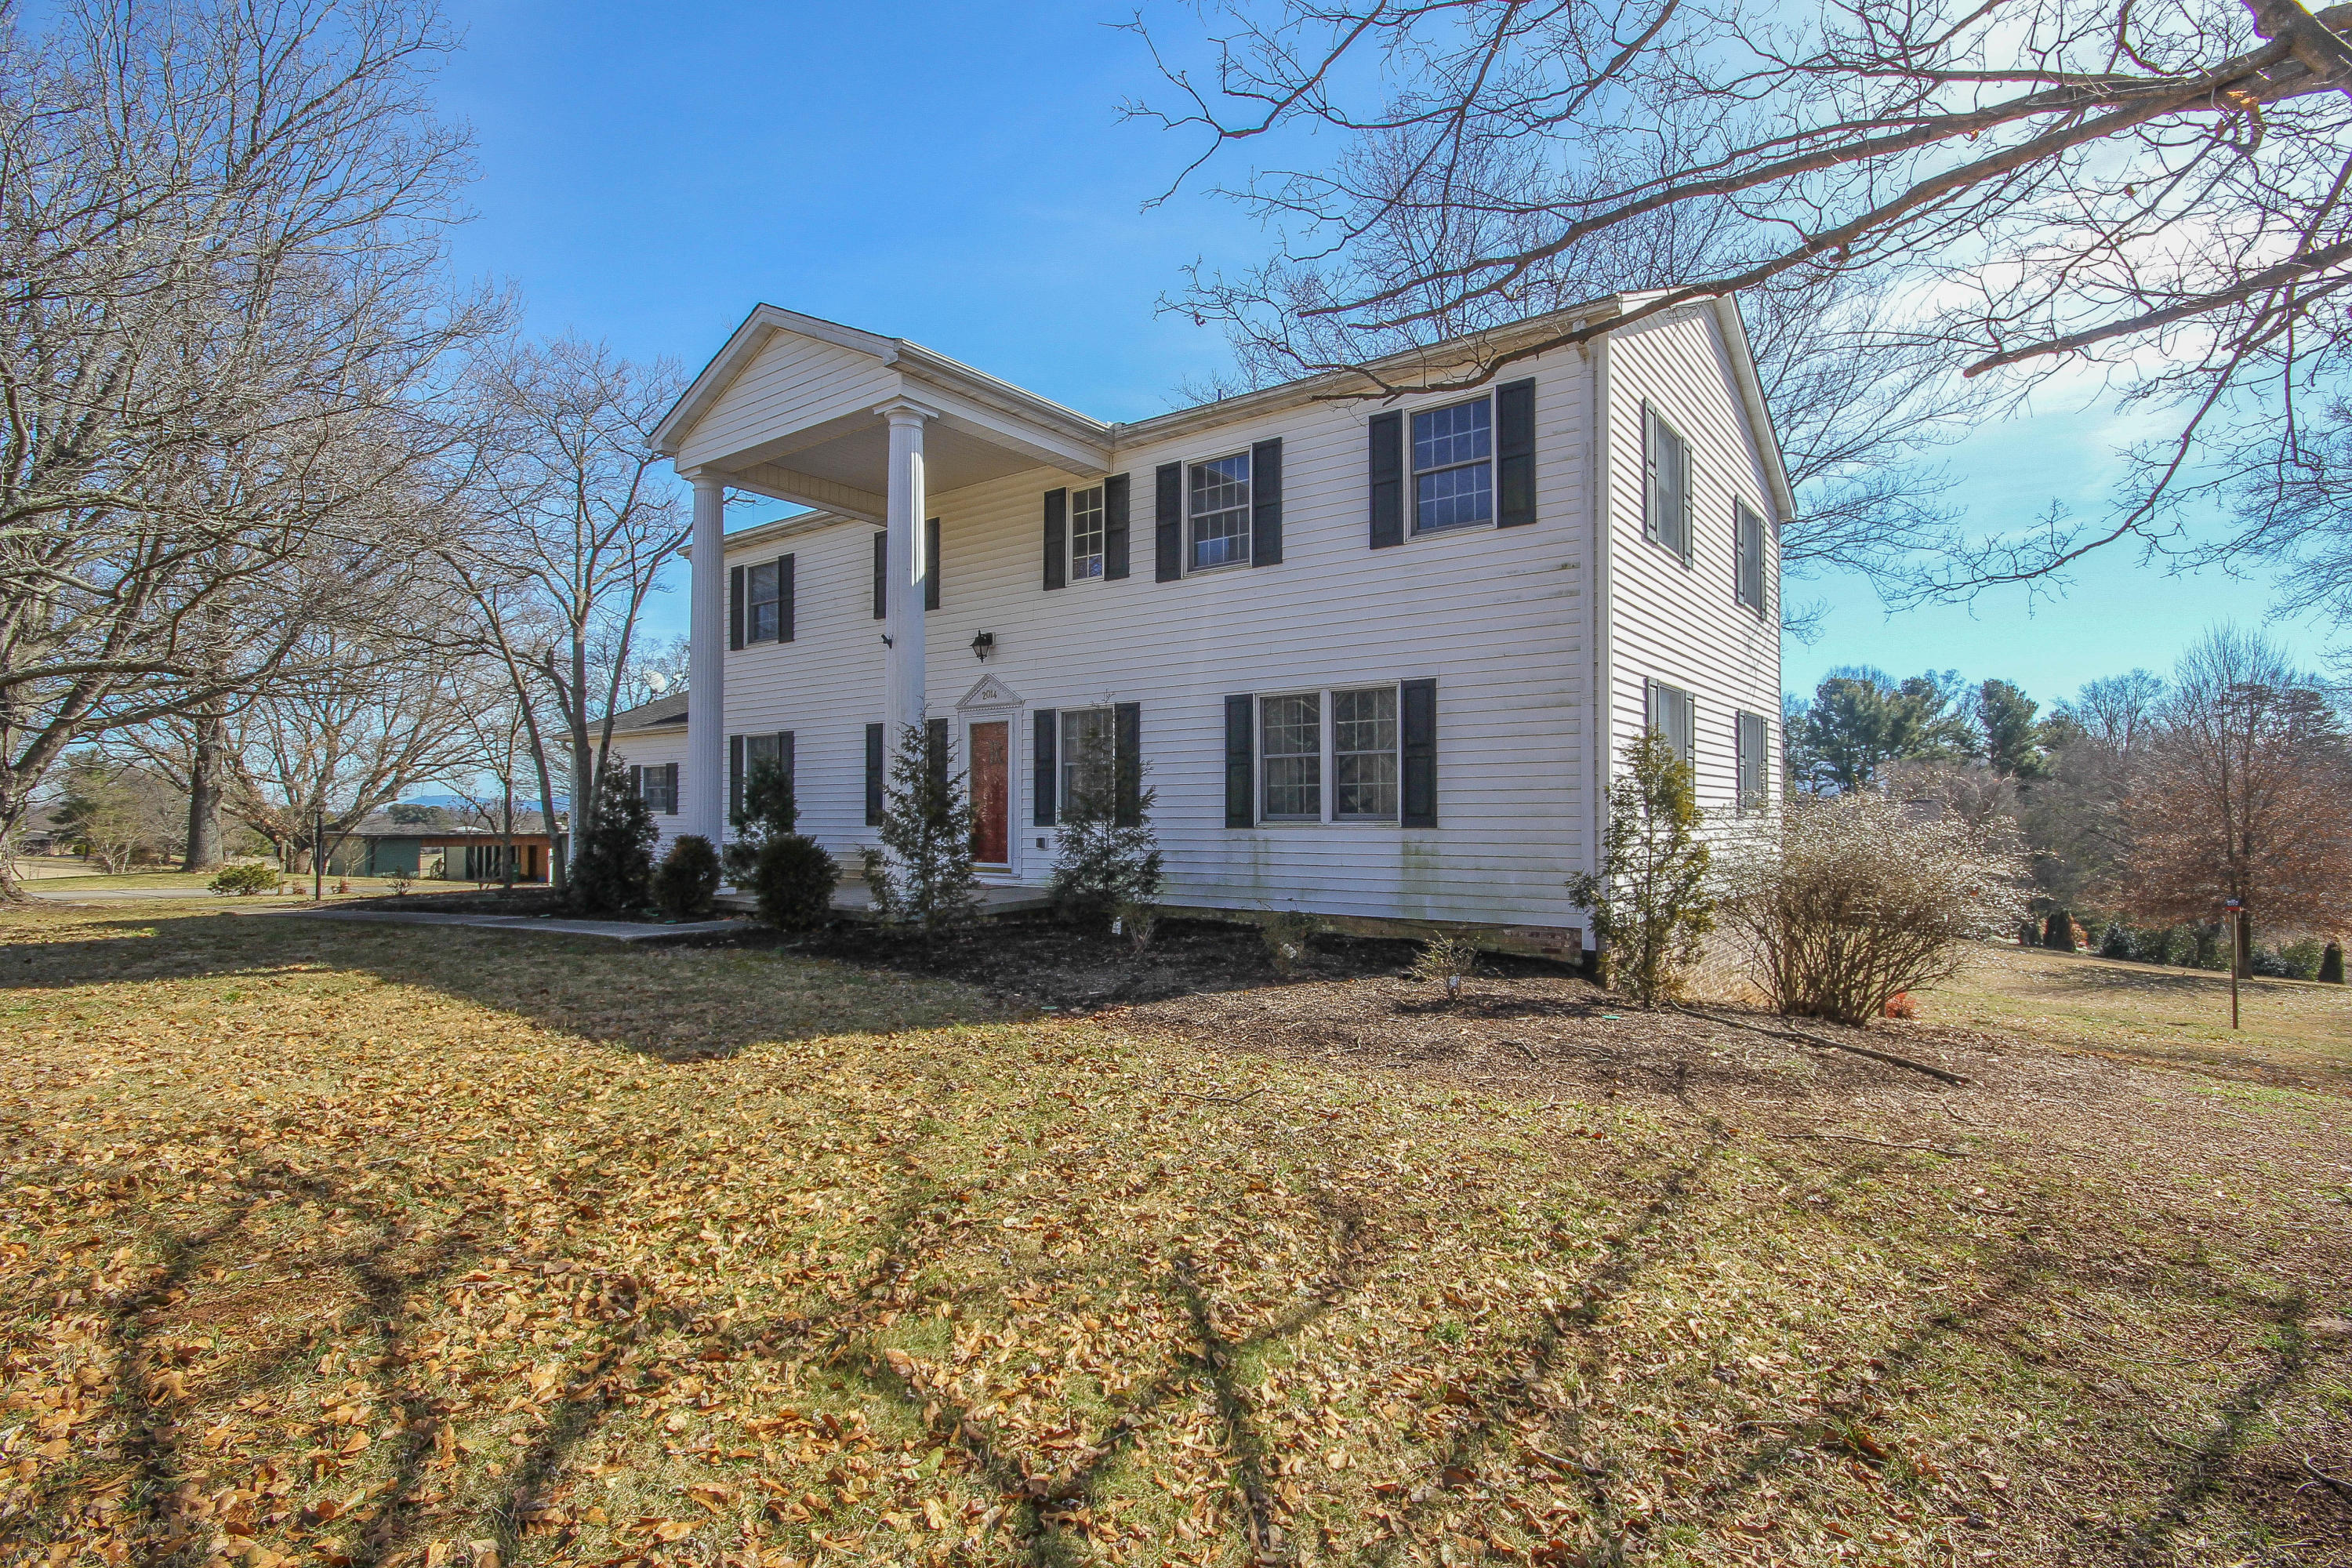 2014 Southwood, Maryville, Tennessee, United States 37803, 4 Bedrooms Bedrooms, ,3 BathroomsBathrooms,Single Family,For Sale,Southwood,1023808